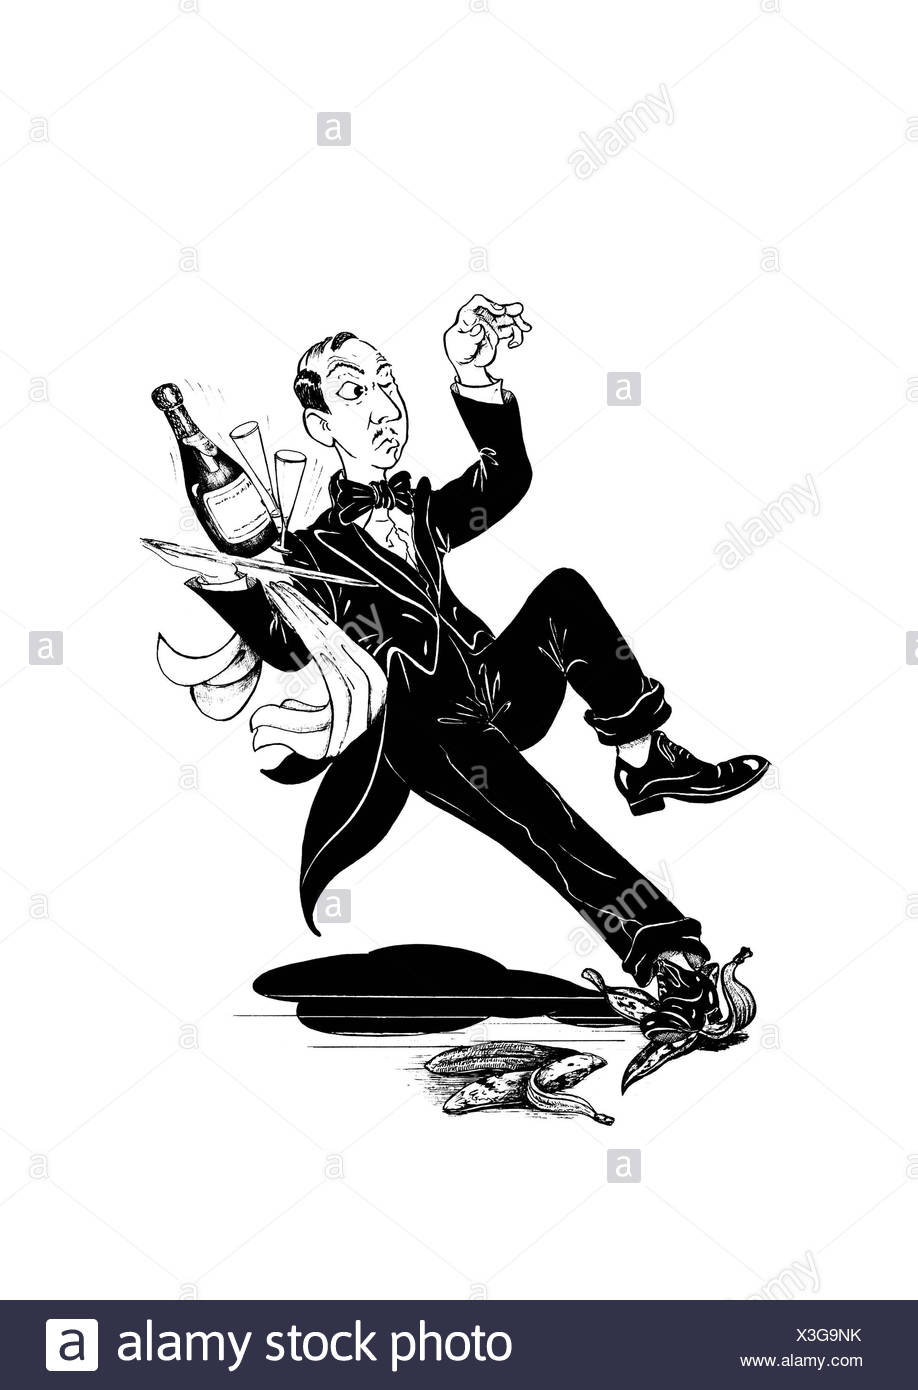 Waiter slipping on a banana peel with full tablet - Stock Image